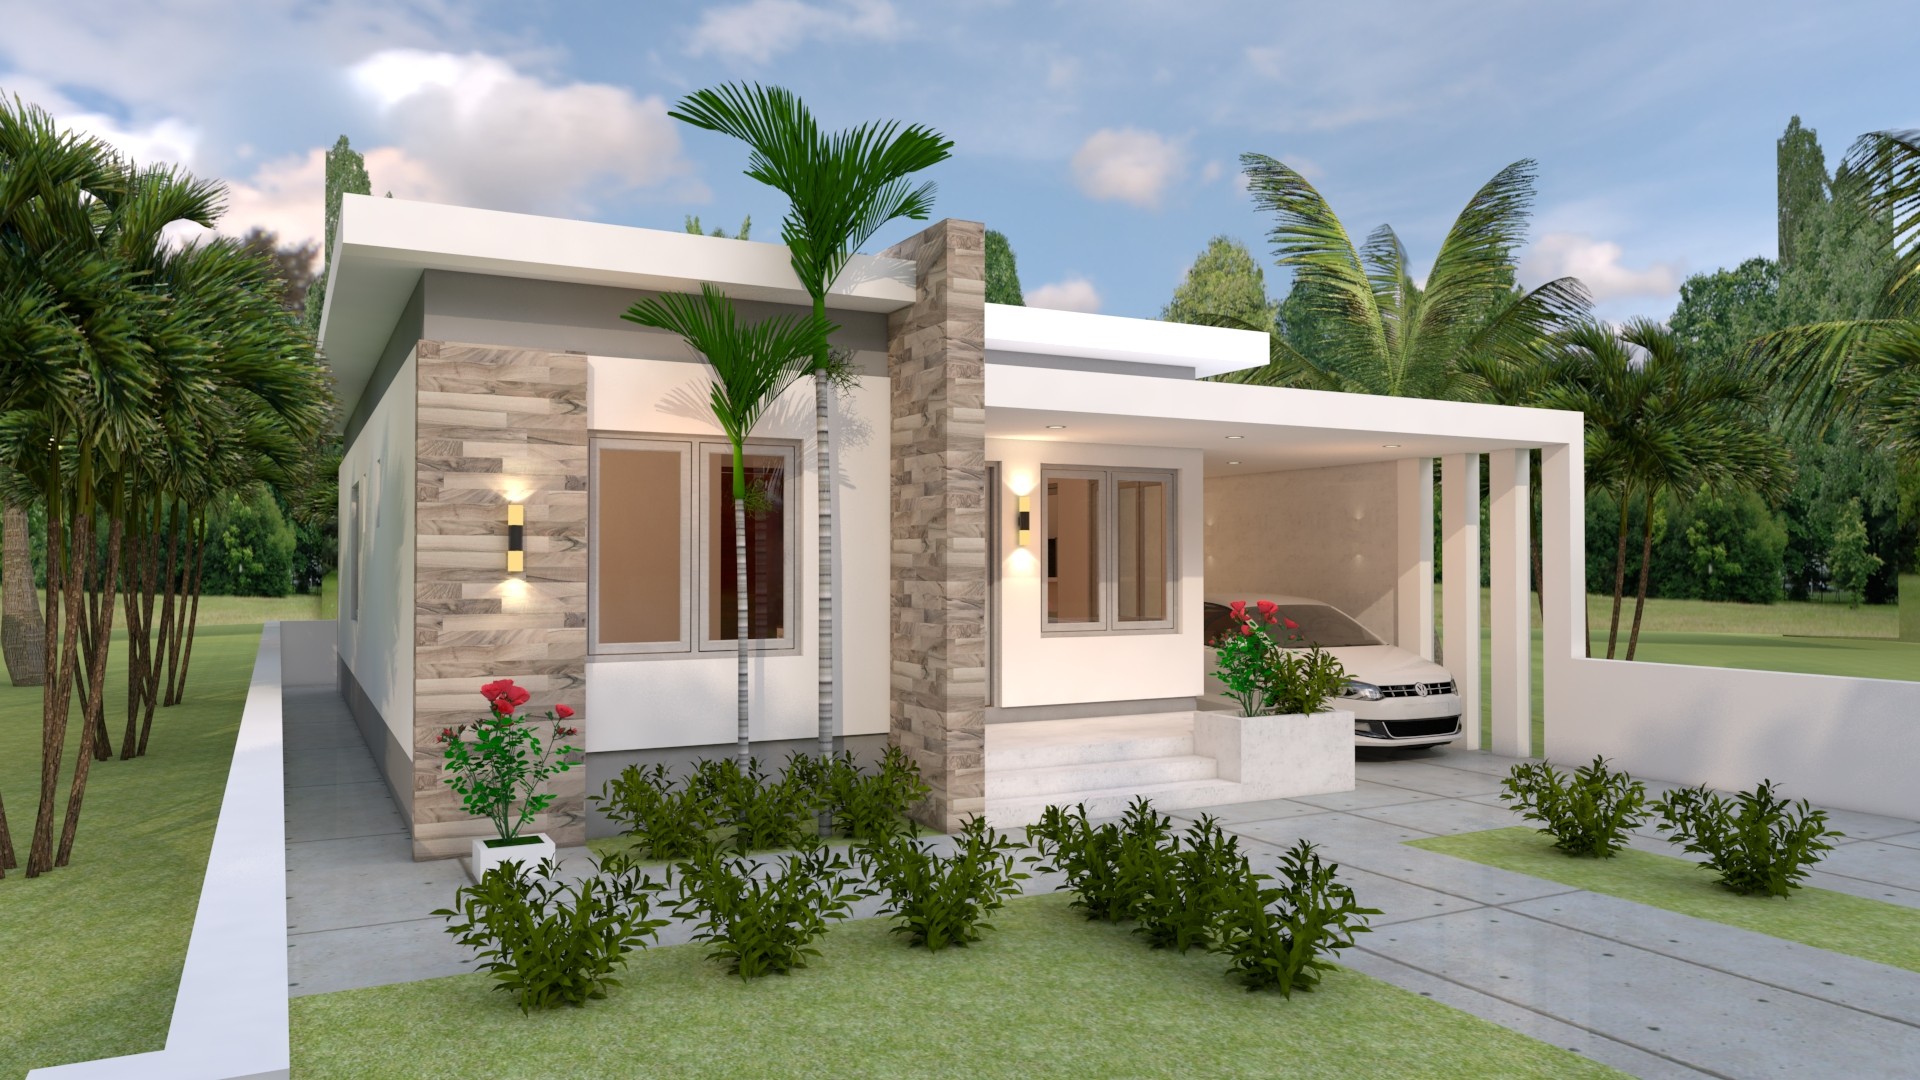 House Design Plans 10x13 With 3 Bedrooms Sam House Plans